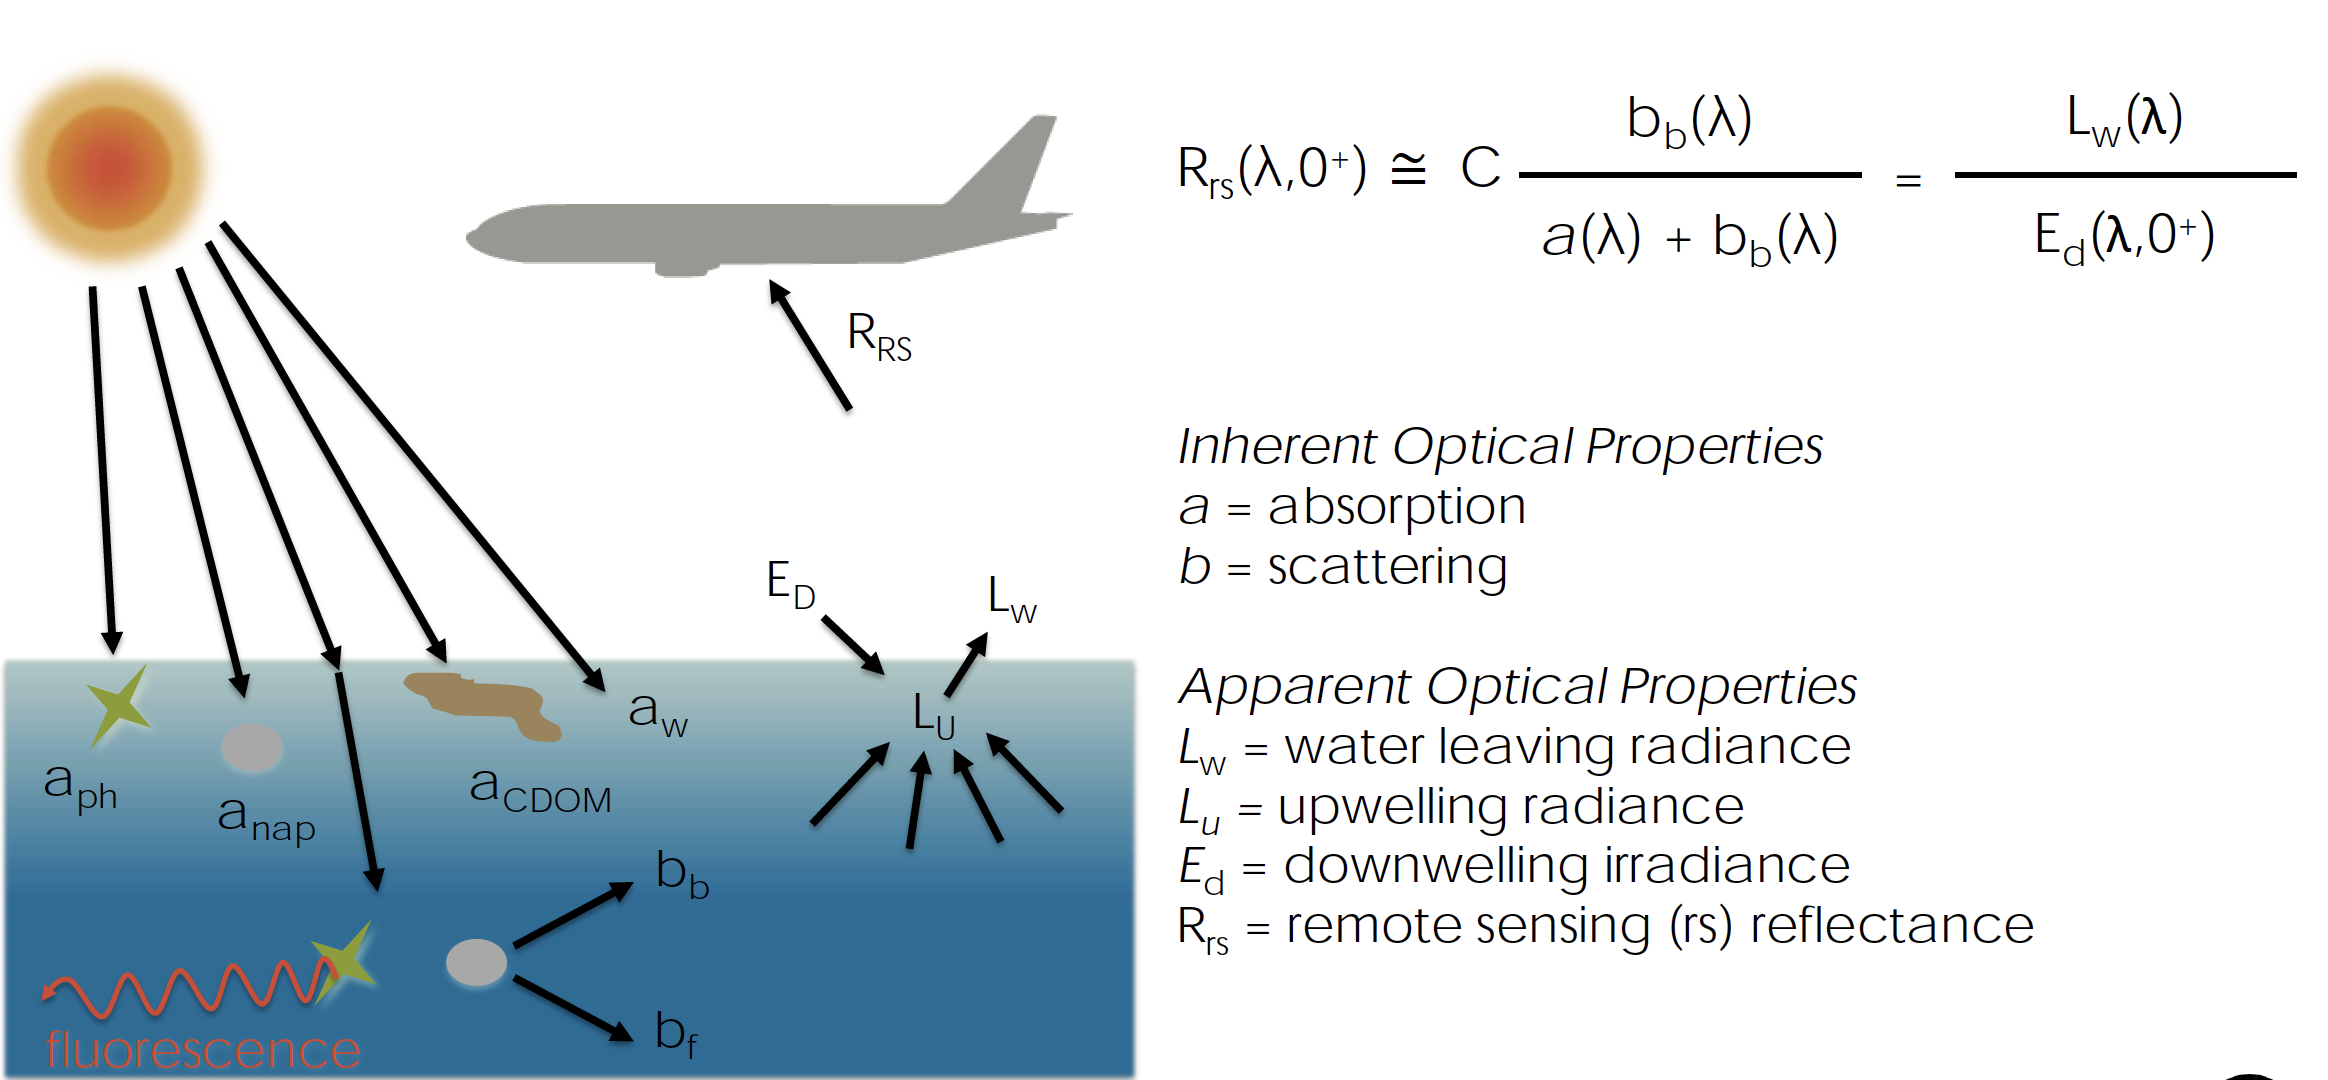 When light interacts with water, it can be absorbed or scattered. Through a series of complex algorithms, the relationship between this absorption and scattering can provide a remote-sensing reflectance value for the water-leaving radiance.